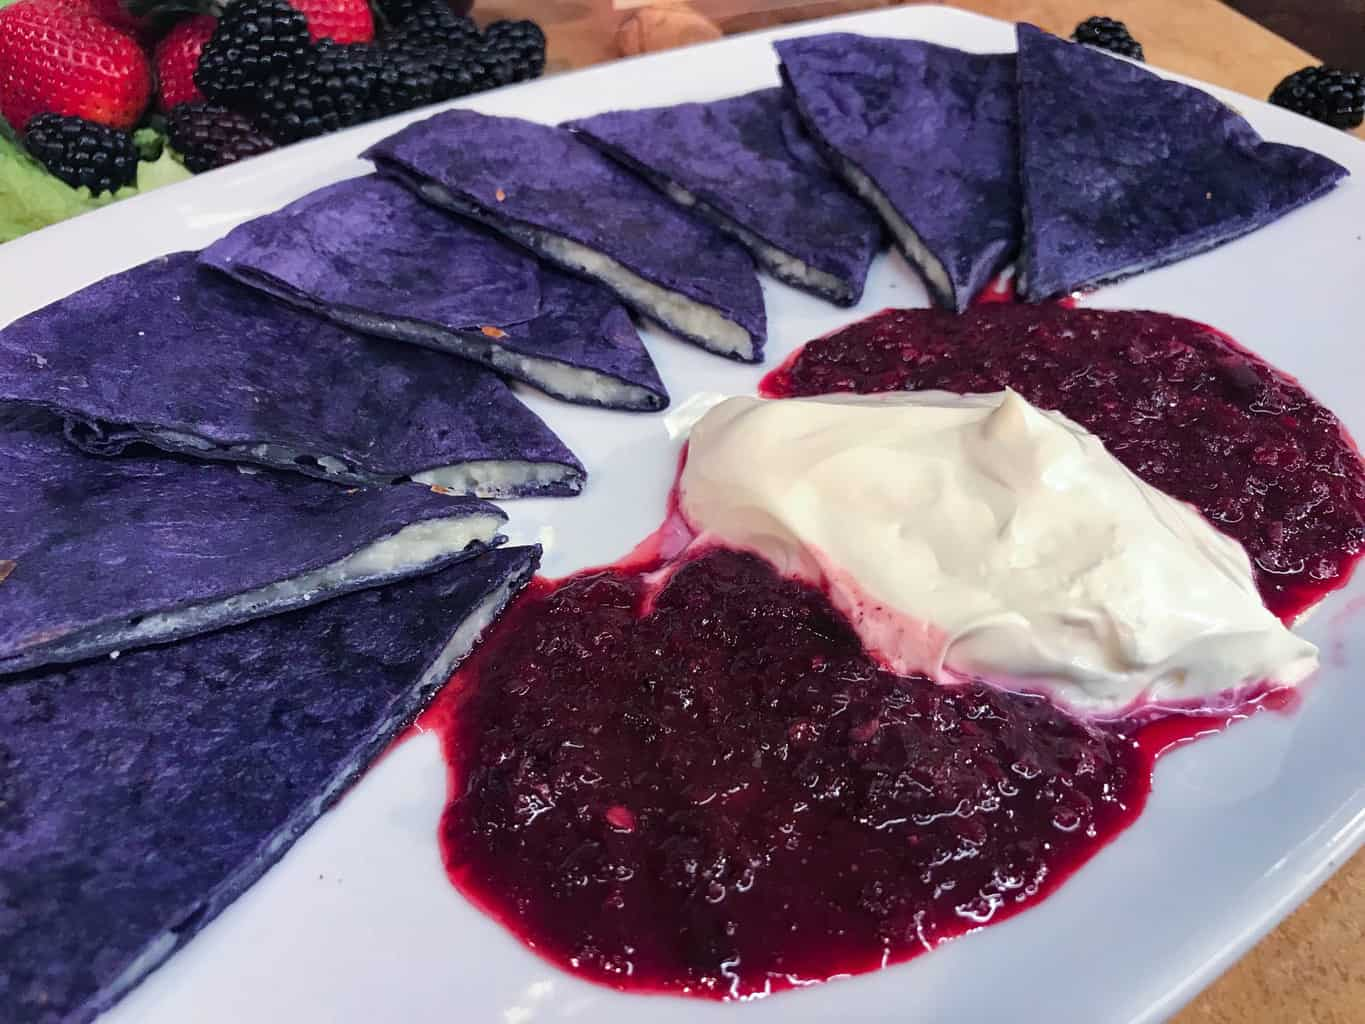 Boysenberry Quesadilla at the Knott's Boysenberry Festival in Buena Park